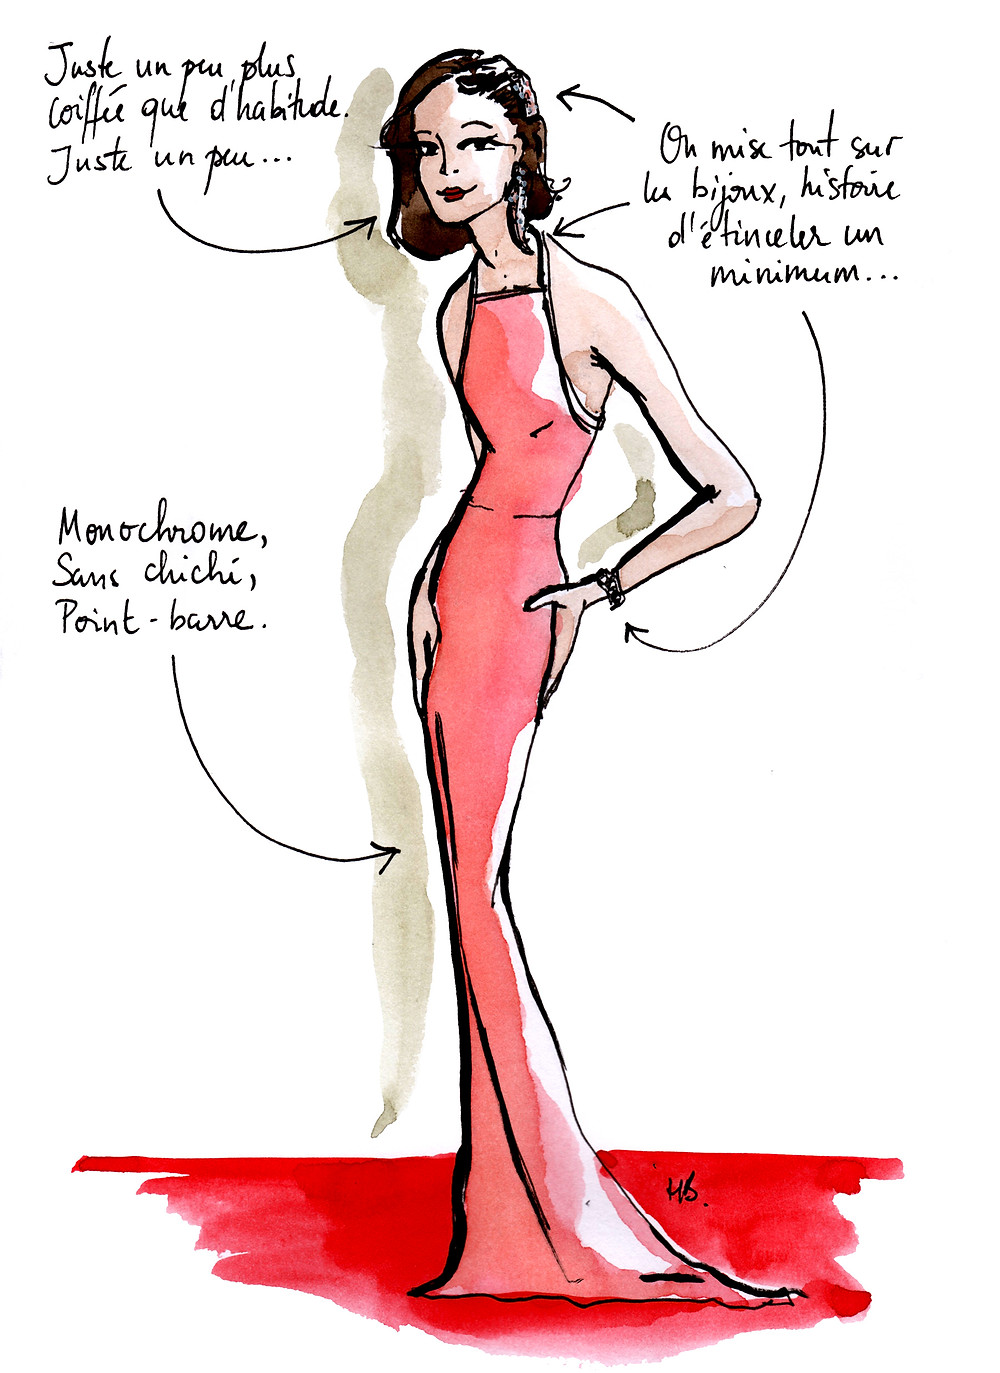 Tenue Festival de Cannes - La minimaliste - Dessin/Illustration Habile Buston